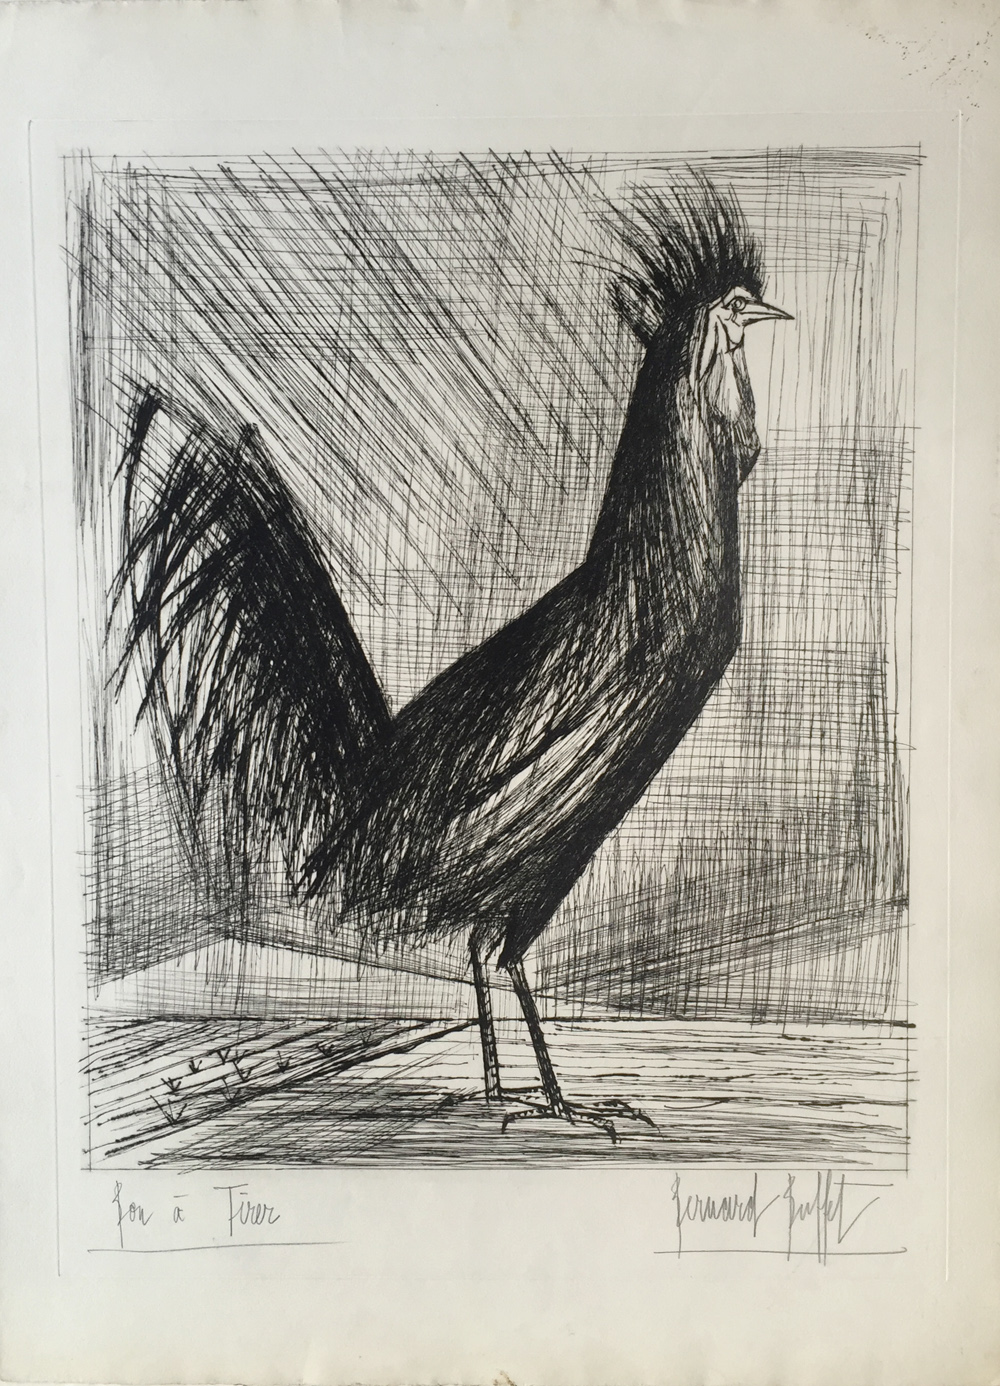 Stupendous Bernard Buffet Le Coq 1959 For Sale Denis Bloch Fine Art Download Free Architecture Designs Scobabritishbridgeorg